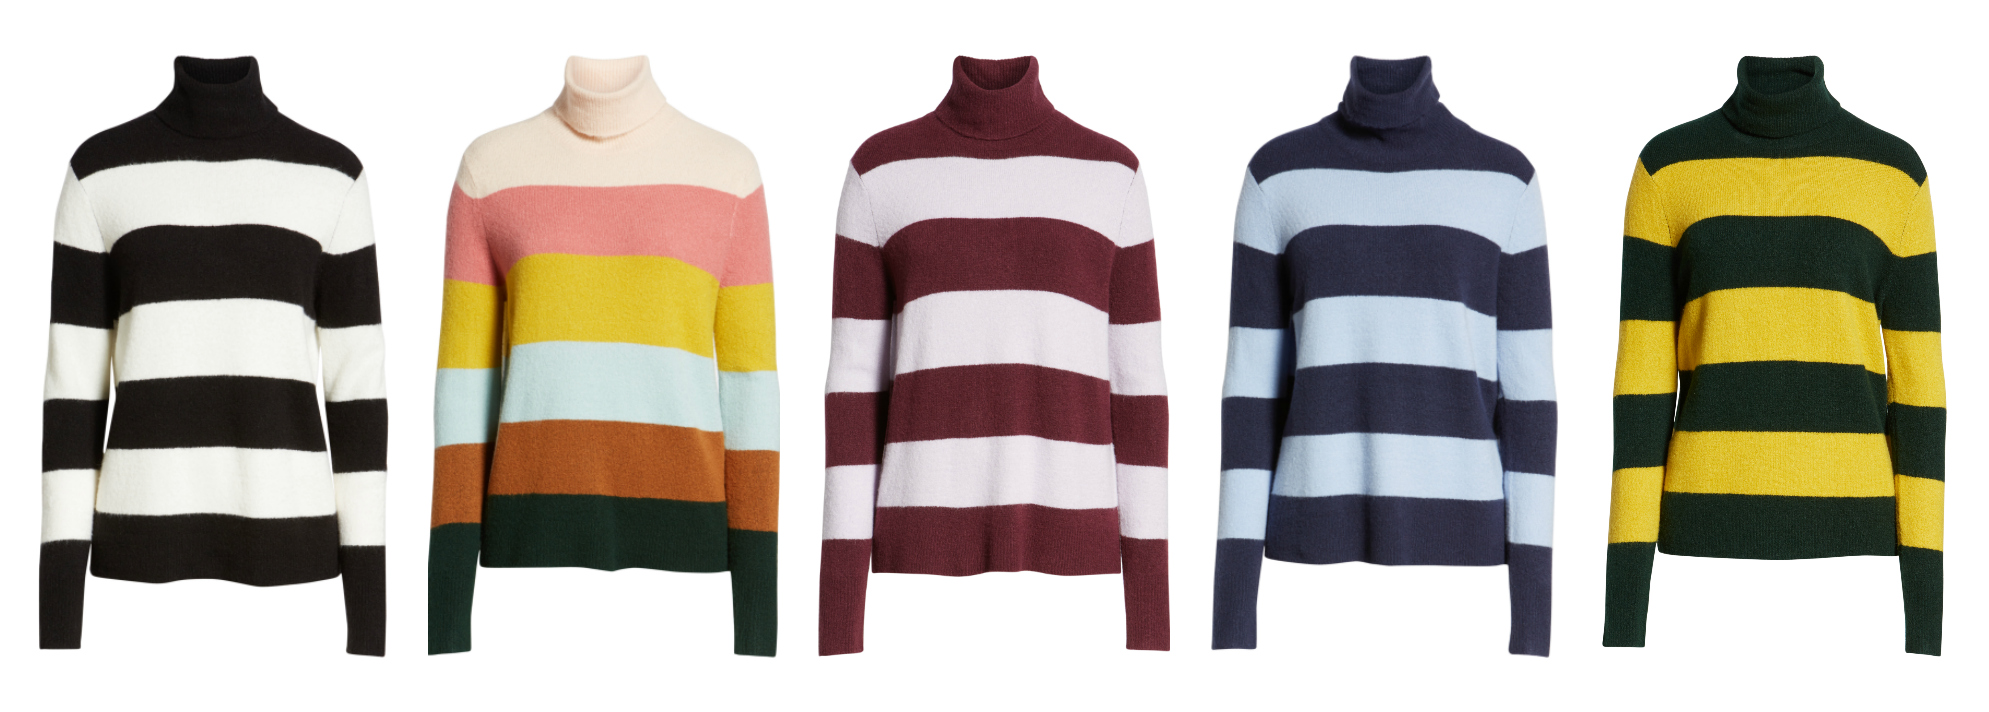 Atlantic_Pacific_Halogen_nordstrom_blair_eadie_fashion_blogger_capsule_collection_fall_october_2018_winter_ootd_stripe_rainbow_sweater.jpg